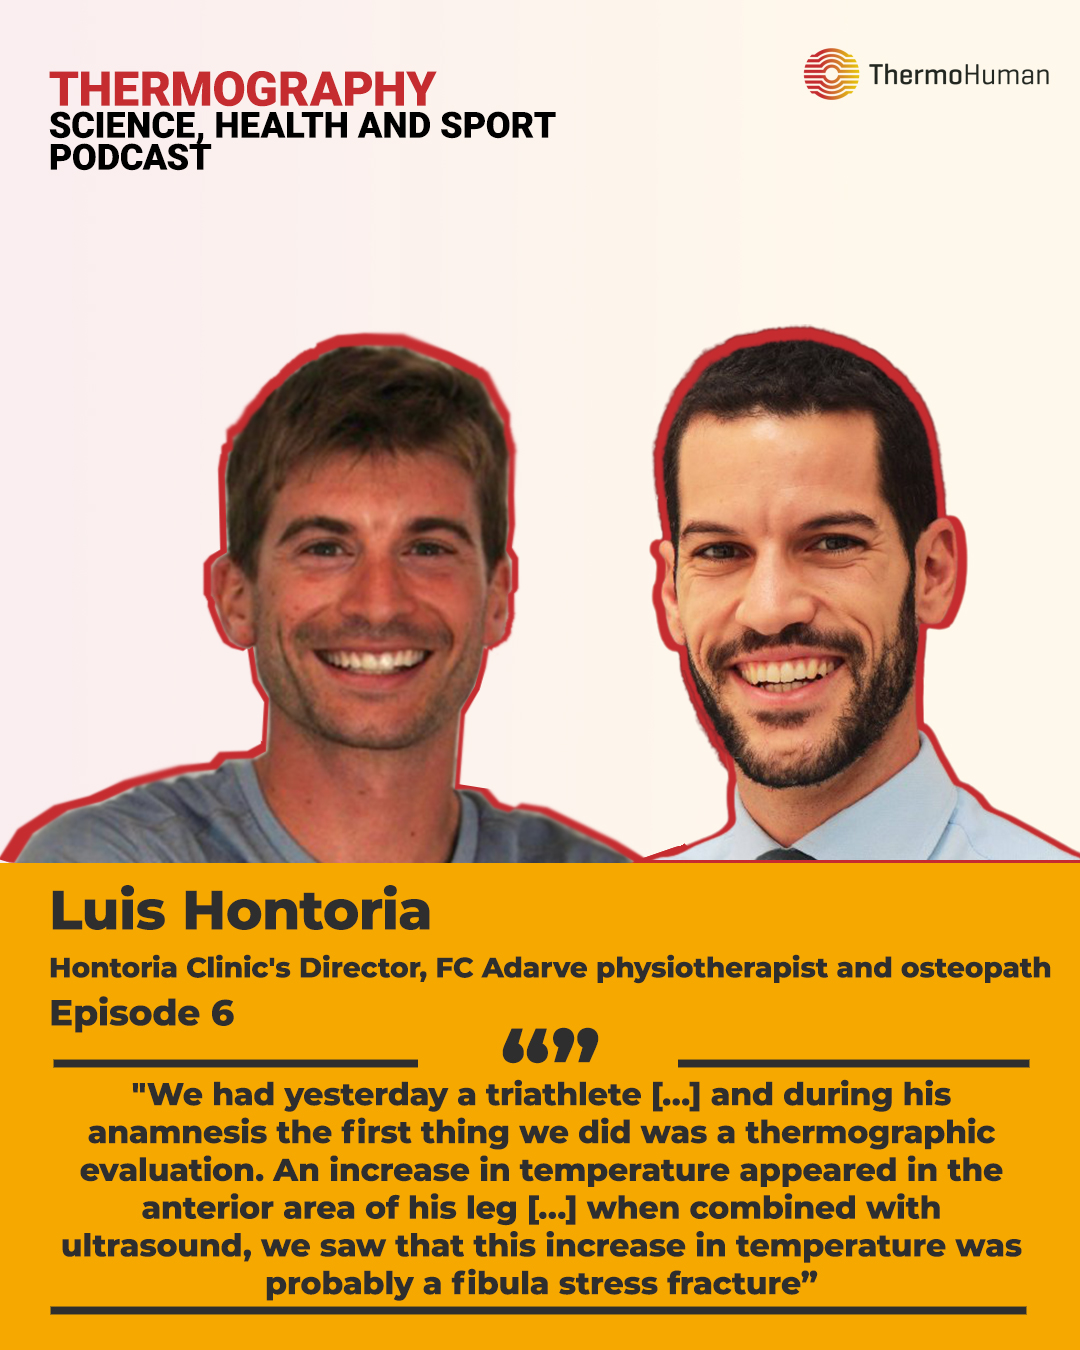 ThermoHuman Podcast 6: Luis Hontoria (Physiotherapist and Osteopath, Director of Clínica Hontoria and UD Adarve physiotherapy area)